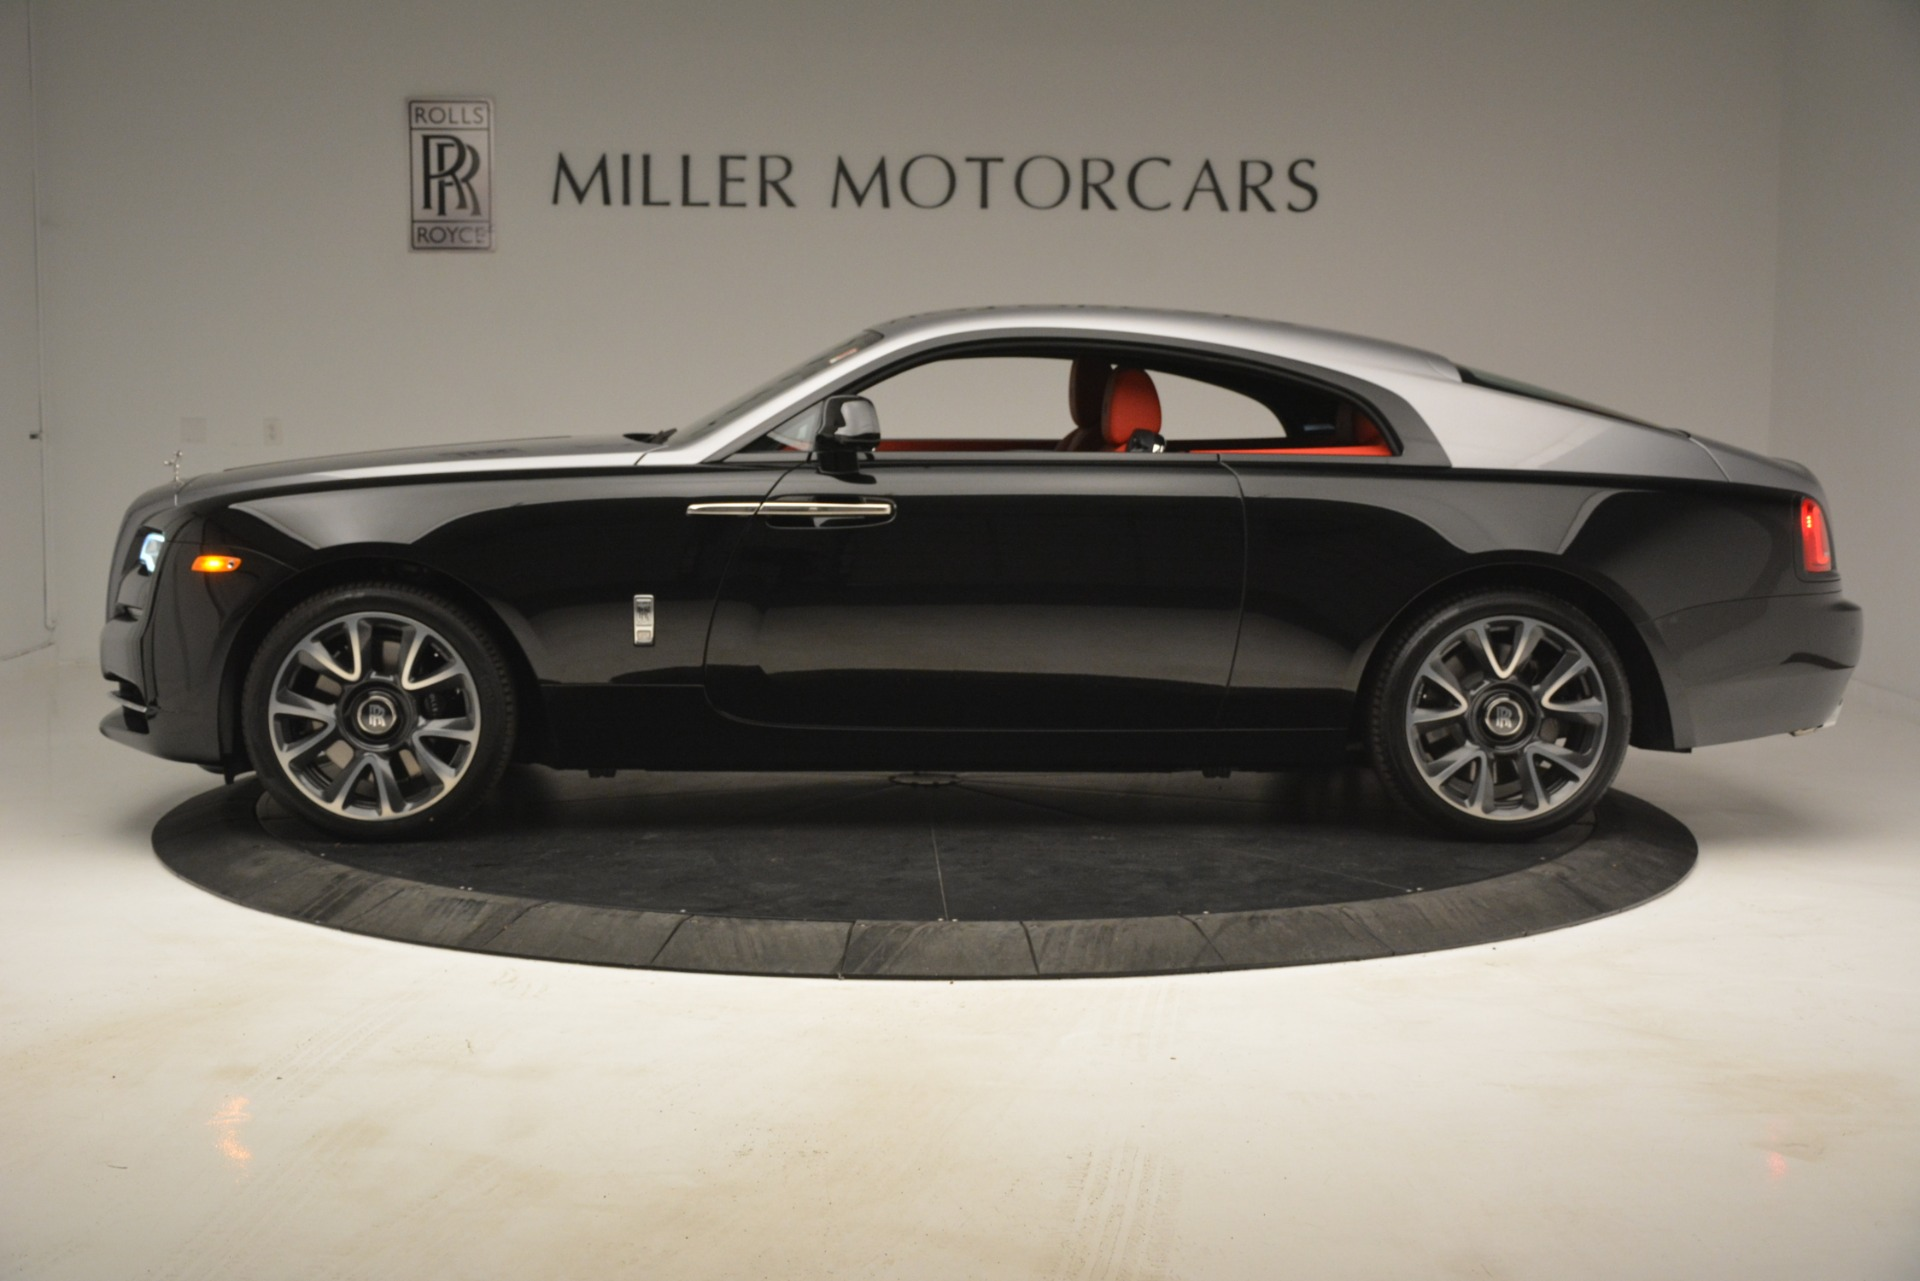 New 2019 Rolls-Royce Wraith  For Sale In Greenwich, CT 2687_p4